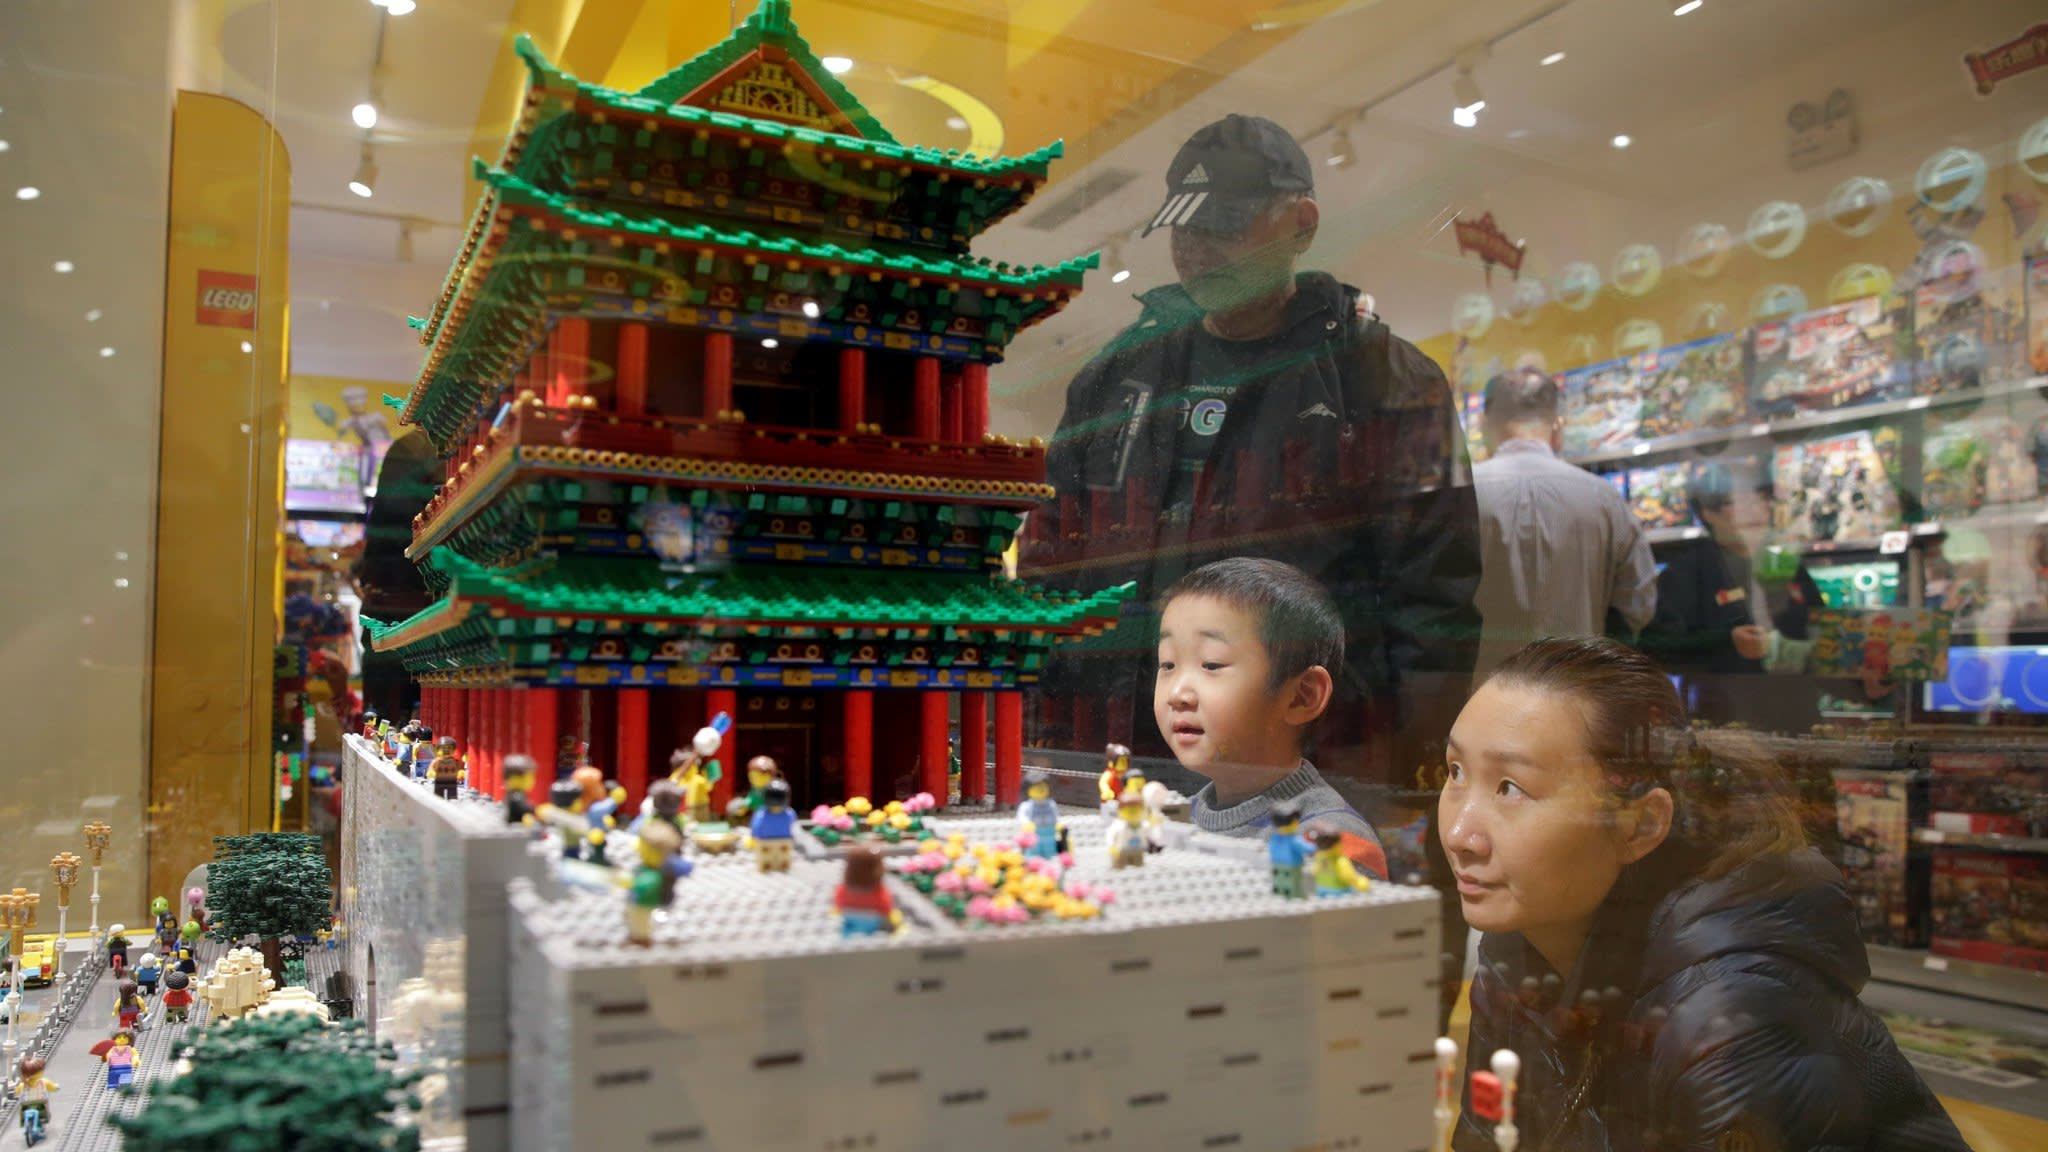 Lego and Tencent team up for China digital partnership | Financial Times